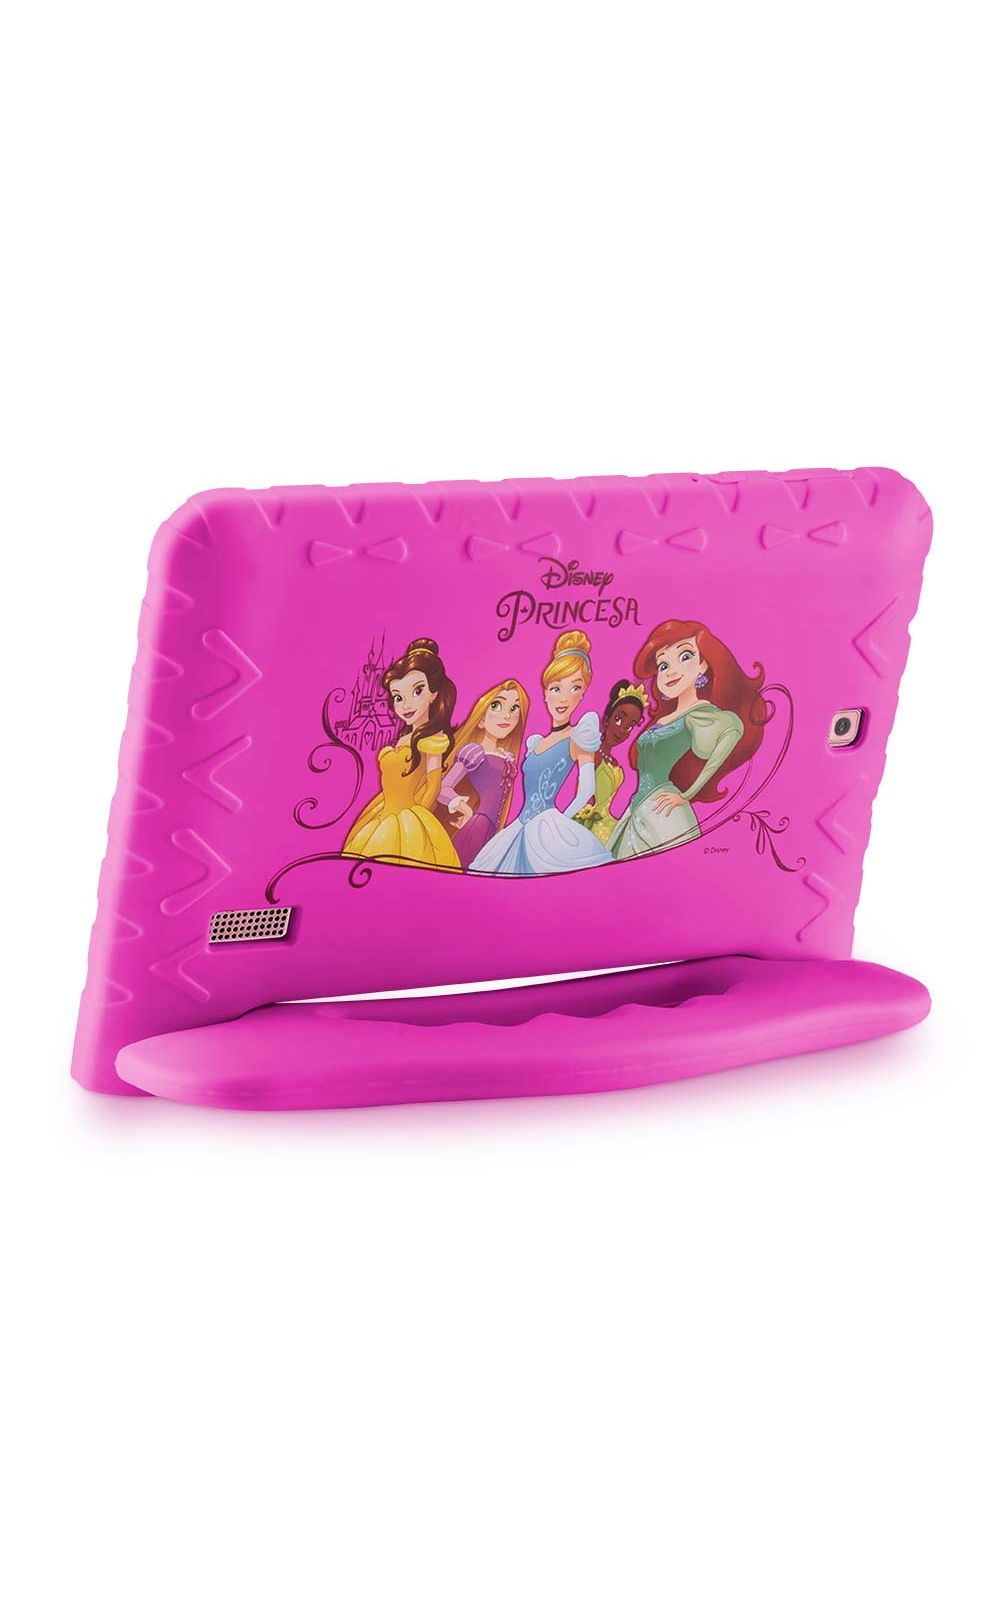 Foto 3 - Tablet Disney Princesas Plus Wifi 8Gb Dual Câmera Android 7 Rosa Multilaser - NB281